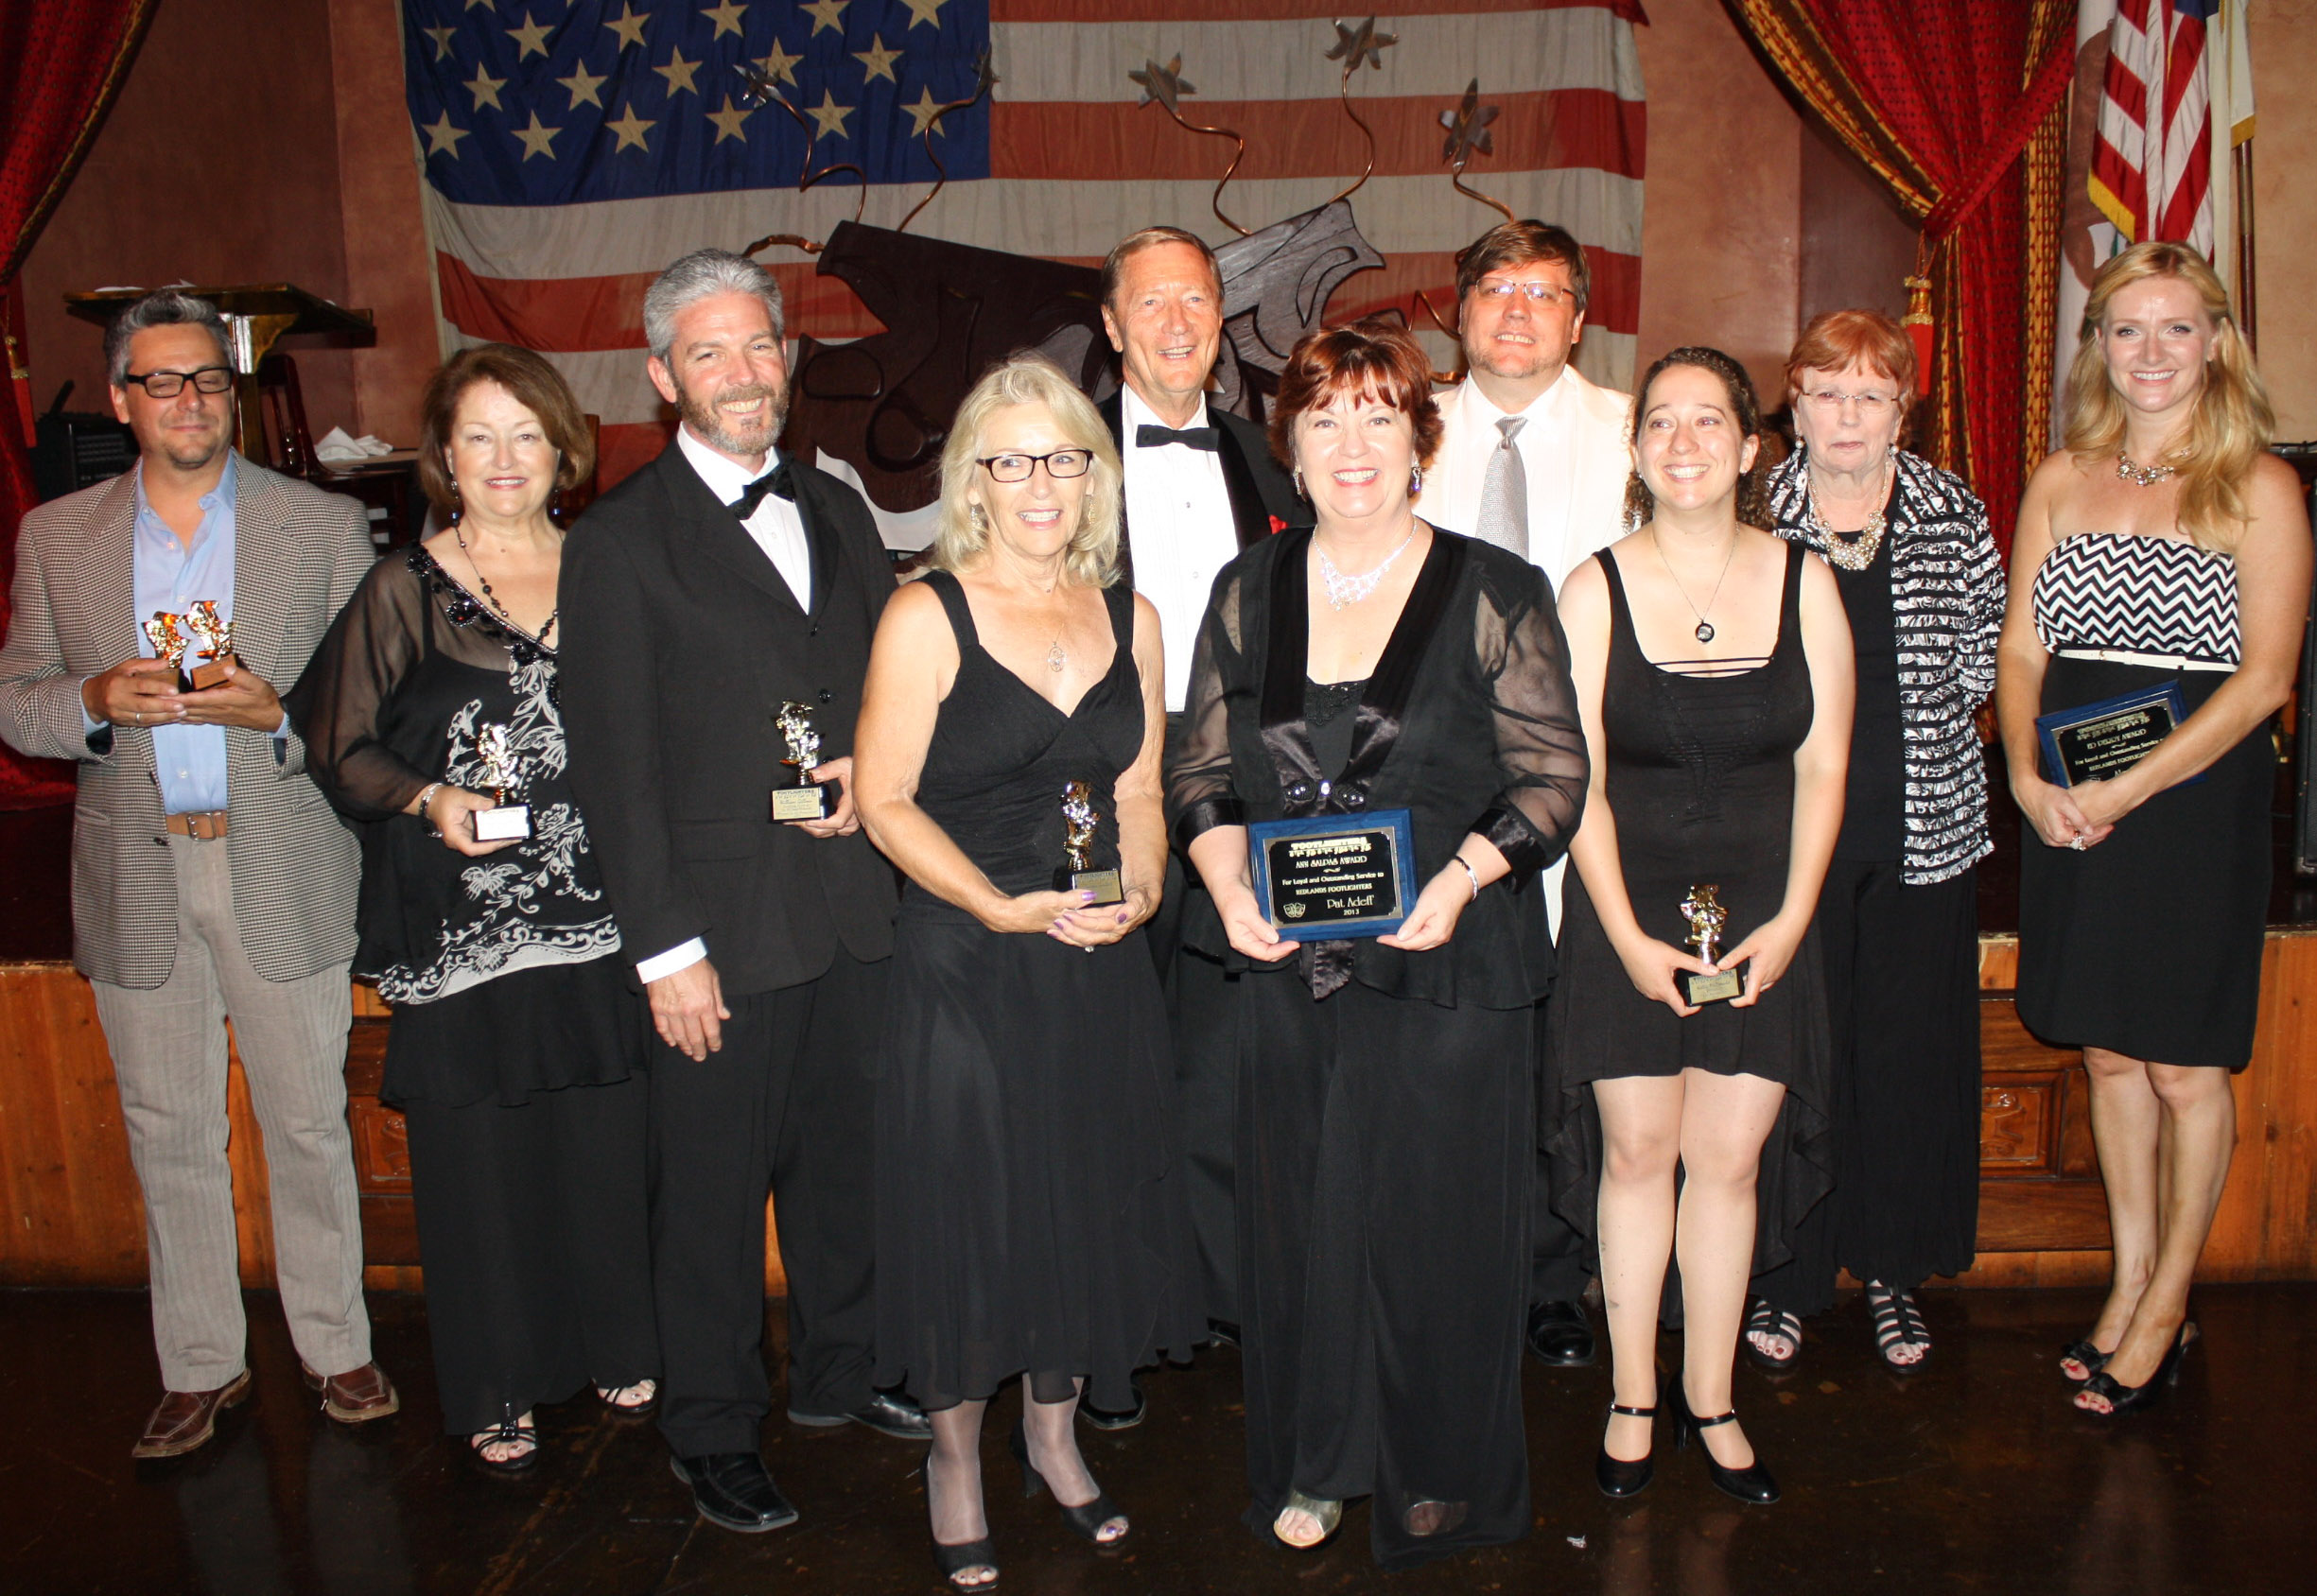 Winners at the Footlighters banquet on June 30th.  From left to right: Phillip Gabriel. Mary Carruthers, William Gillean, Pamela Lambert, Eric Gruenler, Pat Adeff, Tom Hurst, Kellie McDonald, Carol Steele, and Ali Rafter.